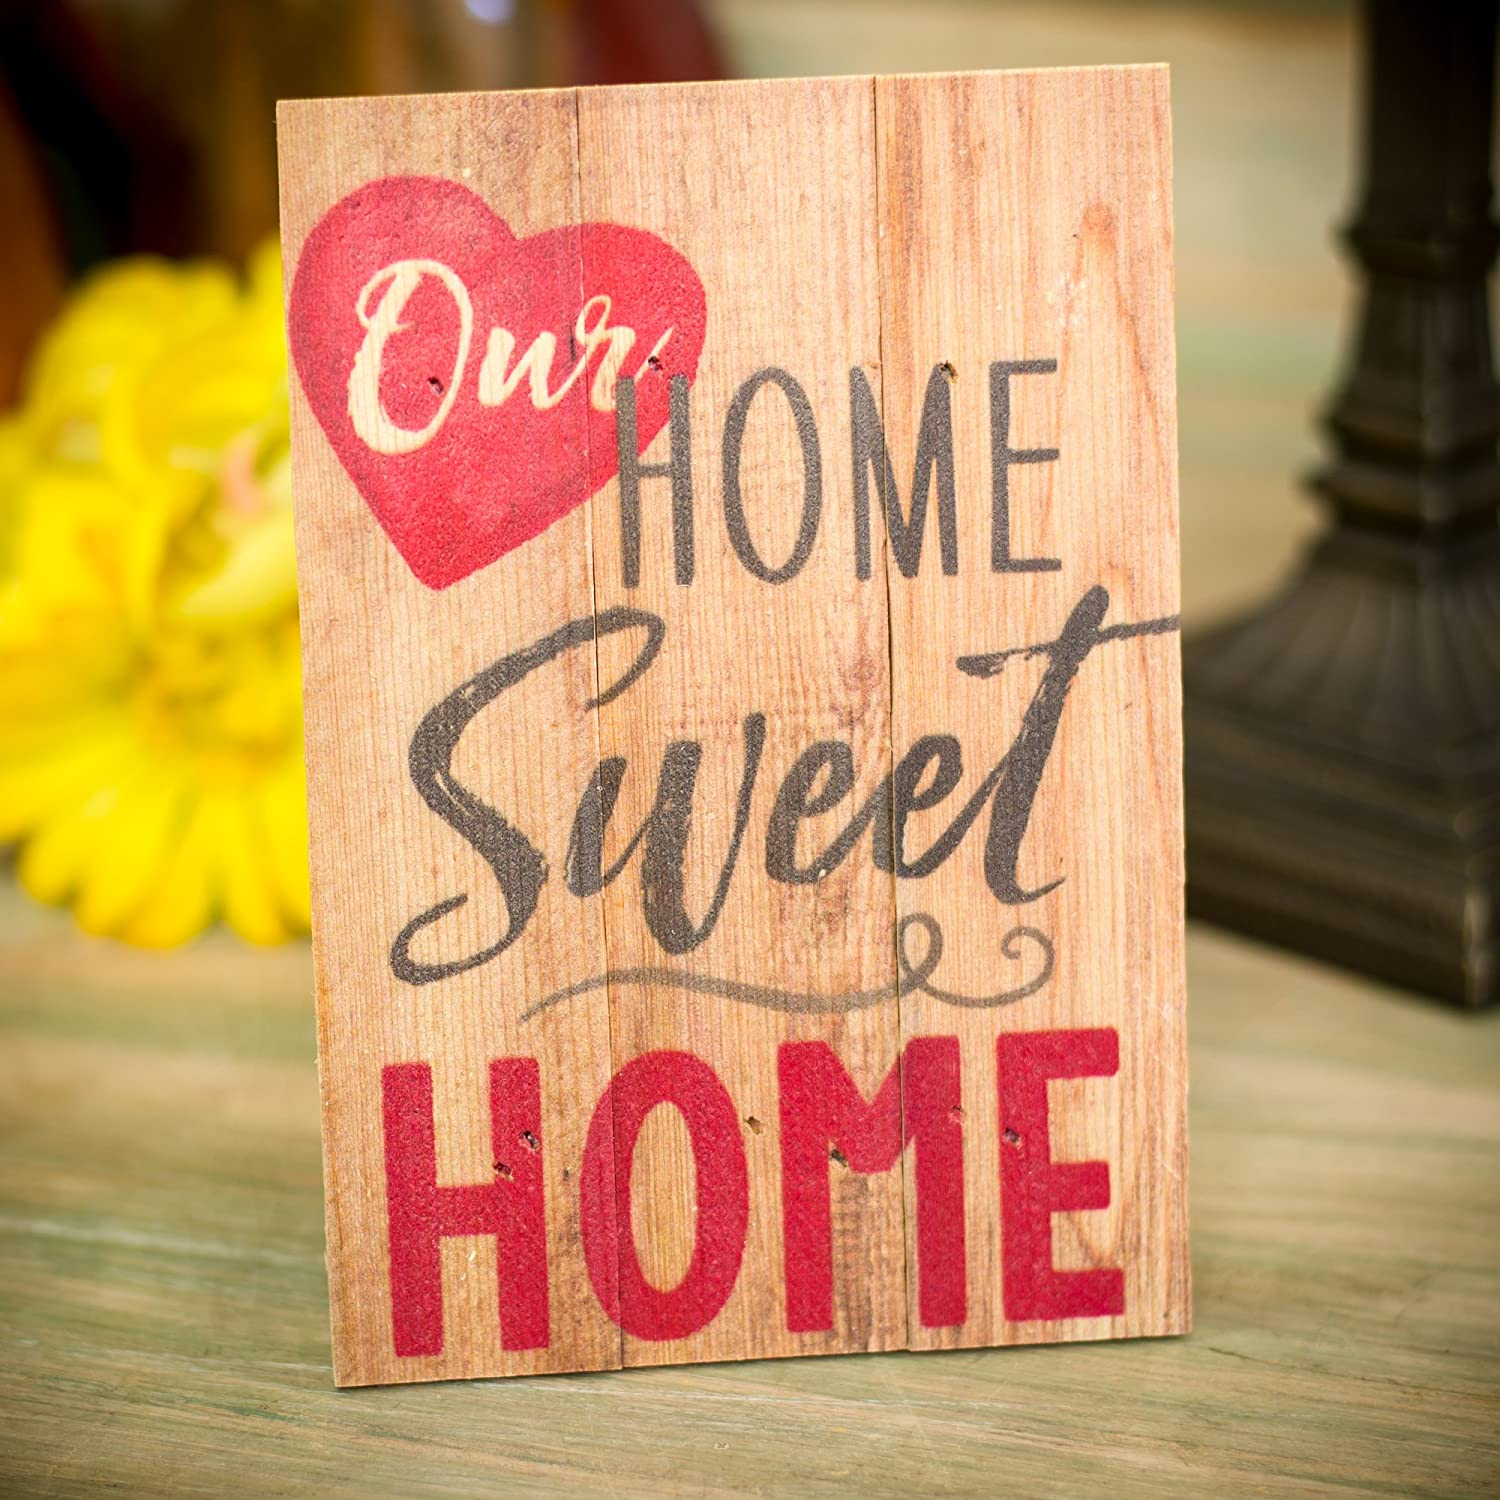 Amazon.com: Home Sweet Home with Heart 7 x 5 Small Wood Plank Design ...